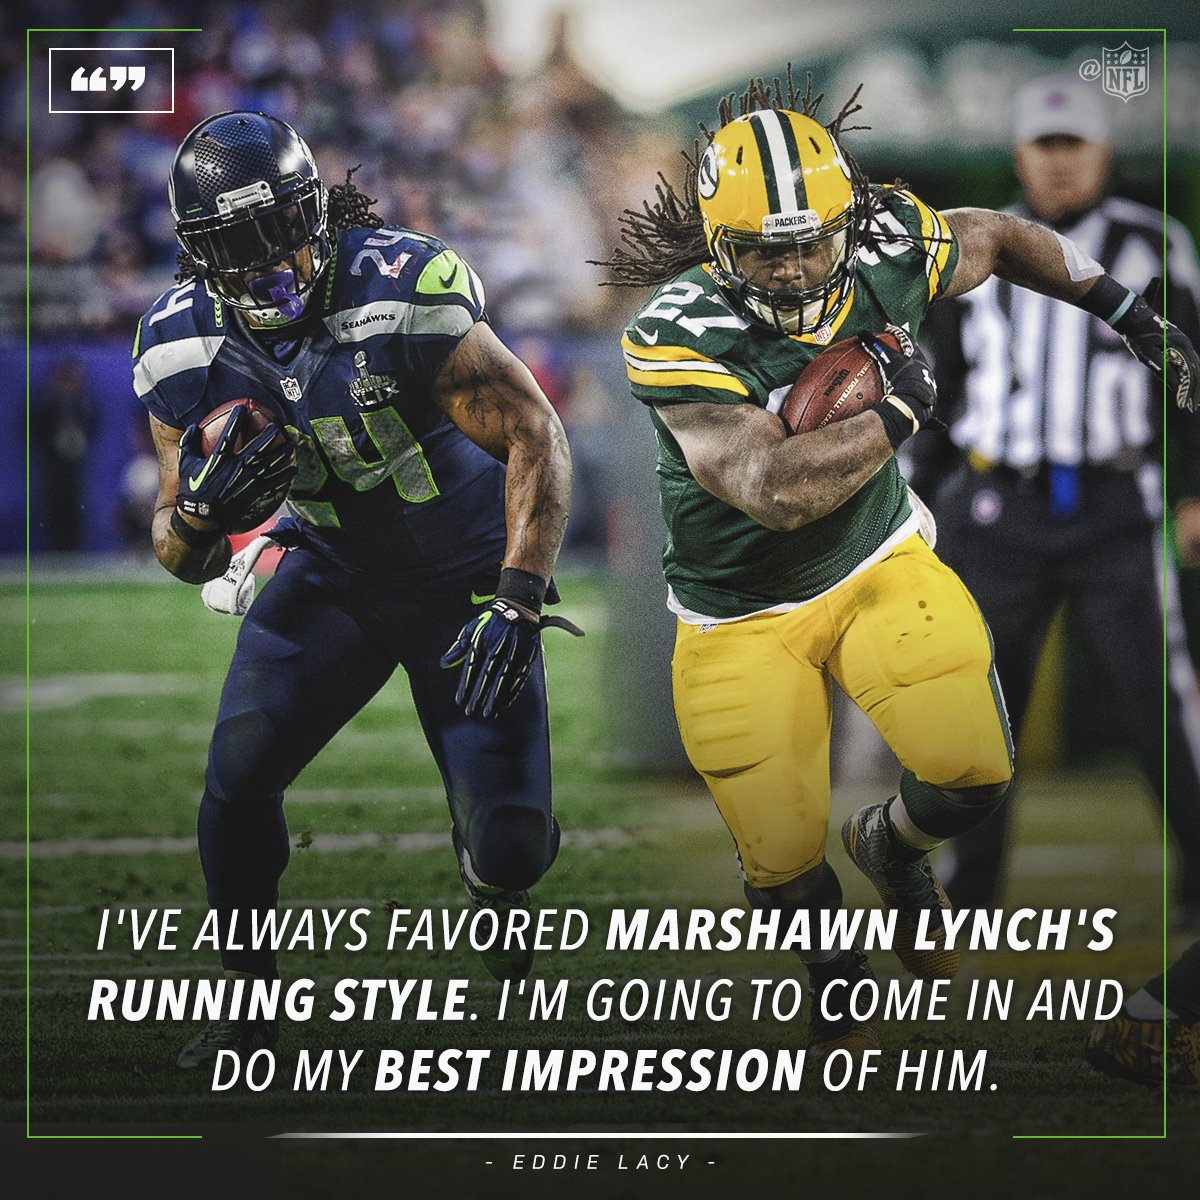 .@Lil_Eazy_Ana_42 will try to his best #BeastMode impression with the @Seahawks. https://t.co/PxpkmINMEw